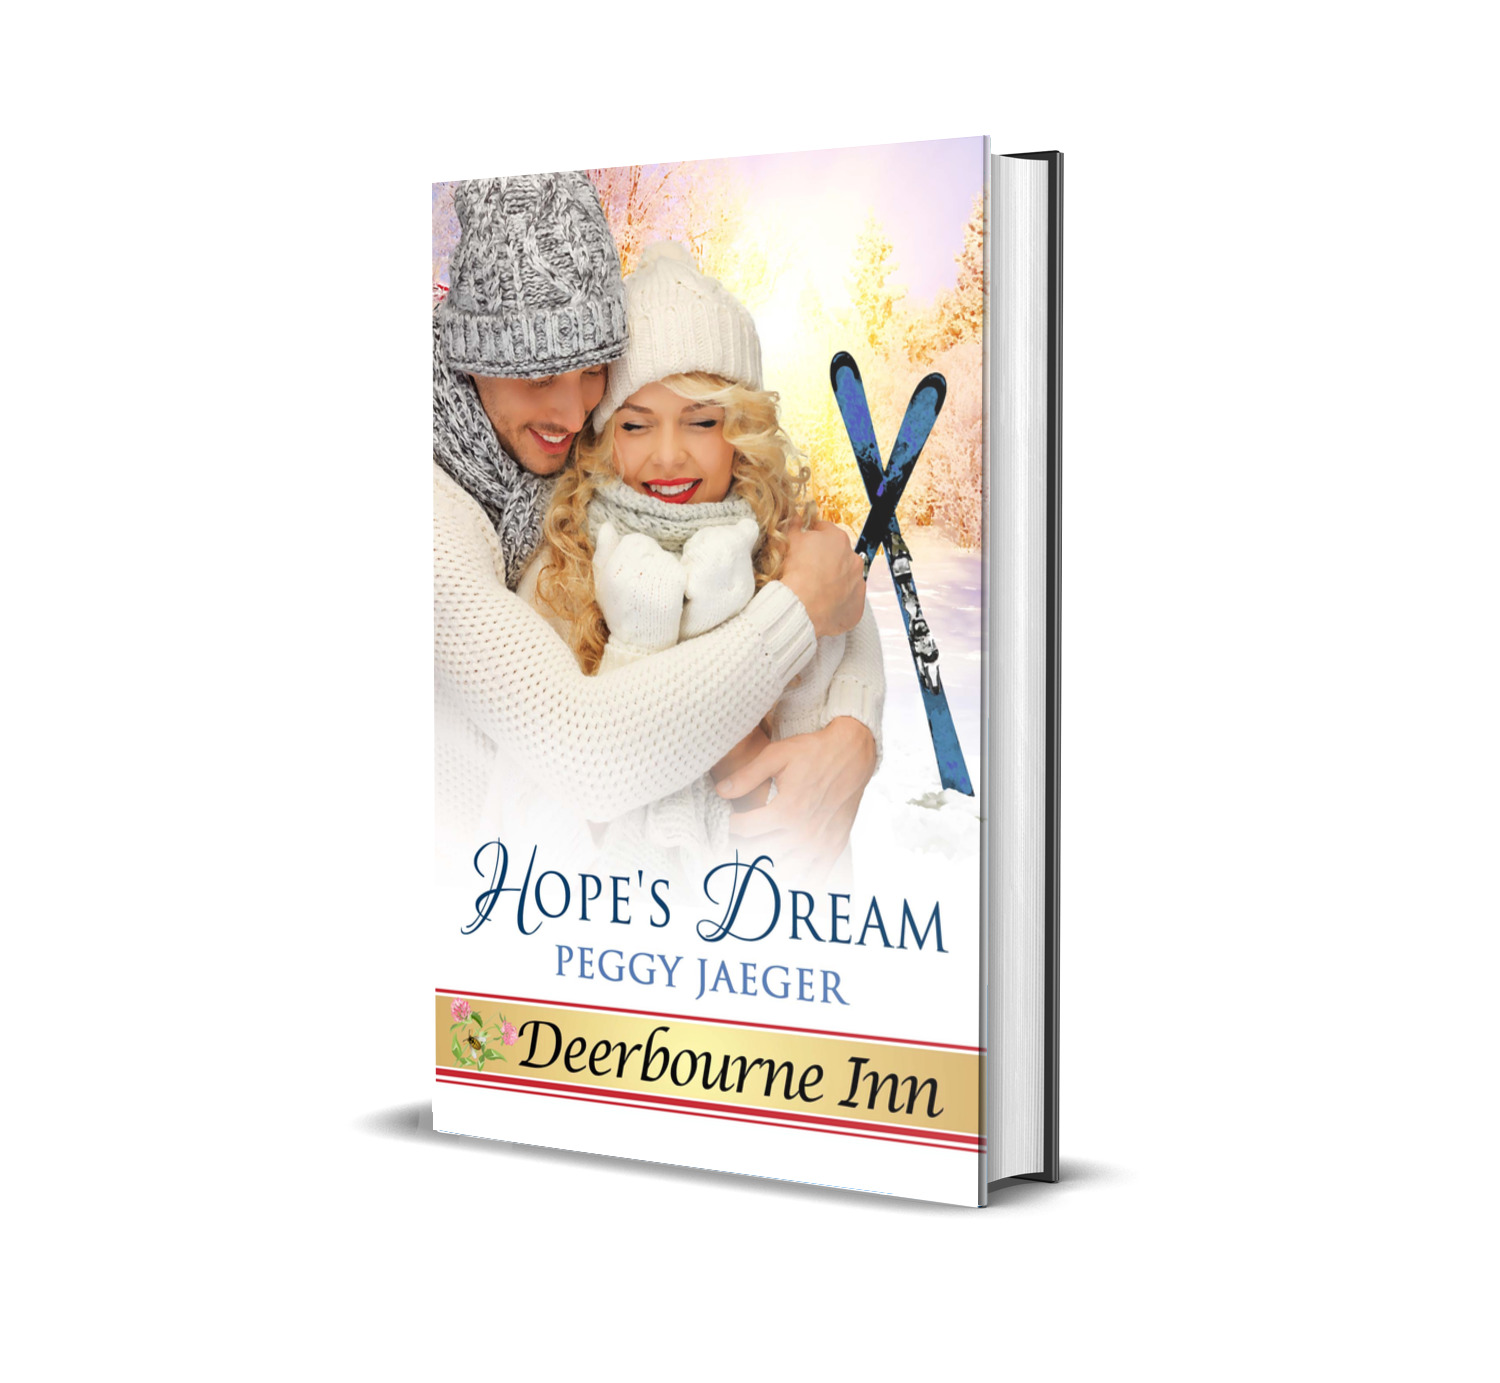 Hope's Dream by Peggy Jaeger